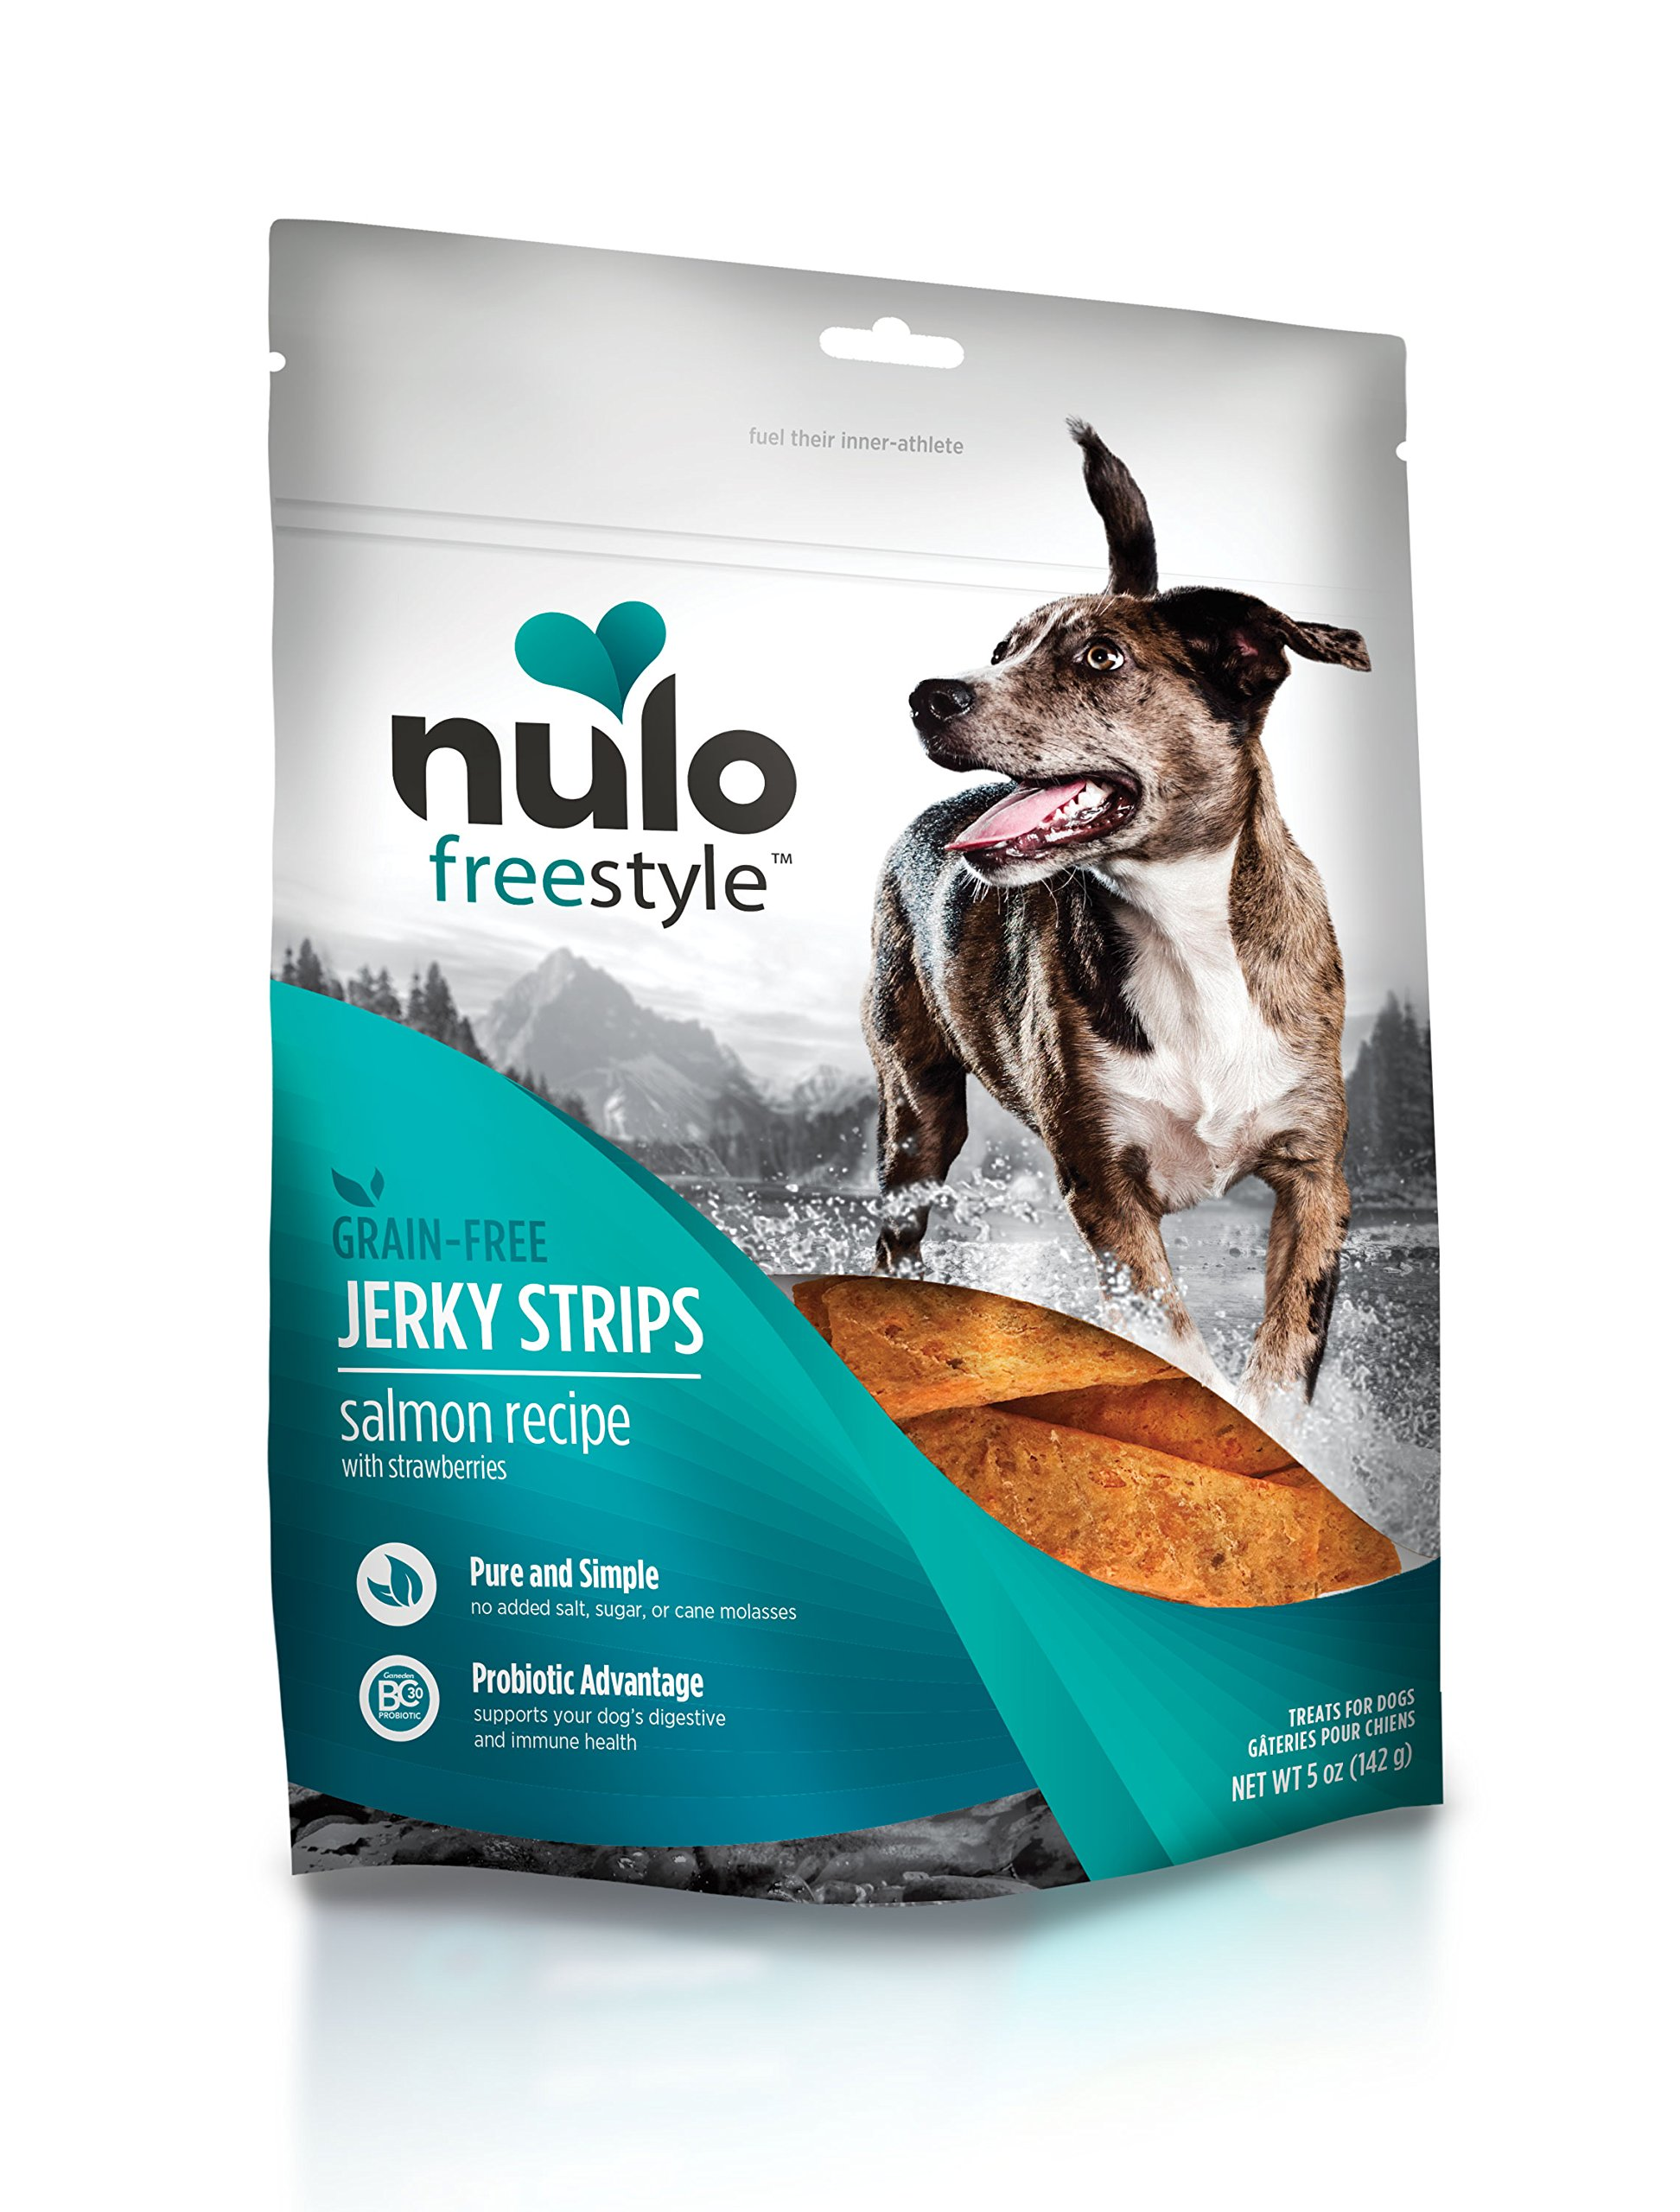 Nulo Freestyle Jerky Dog Treats: Healthy Grain Free Dog Treat - Natural Dog Treats for Training or Reward - Real Meat Jerky Strips for Puppy and Adult Dogs - Salmon with Strawberries Recipe - 5 oz Bag by Nulo (Image #1)